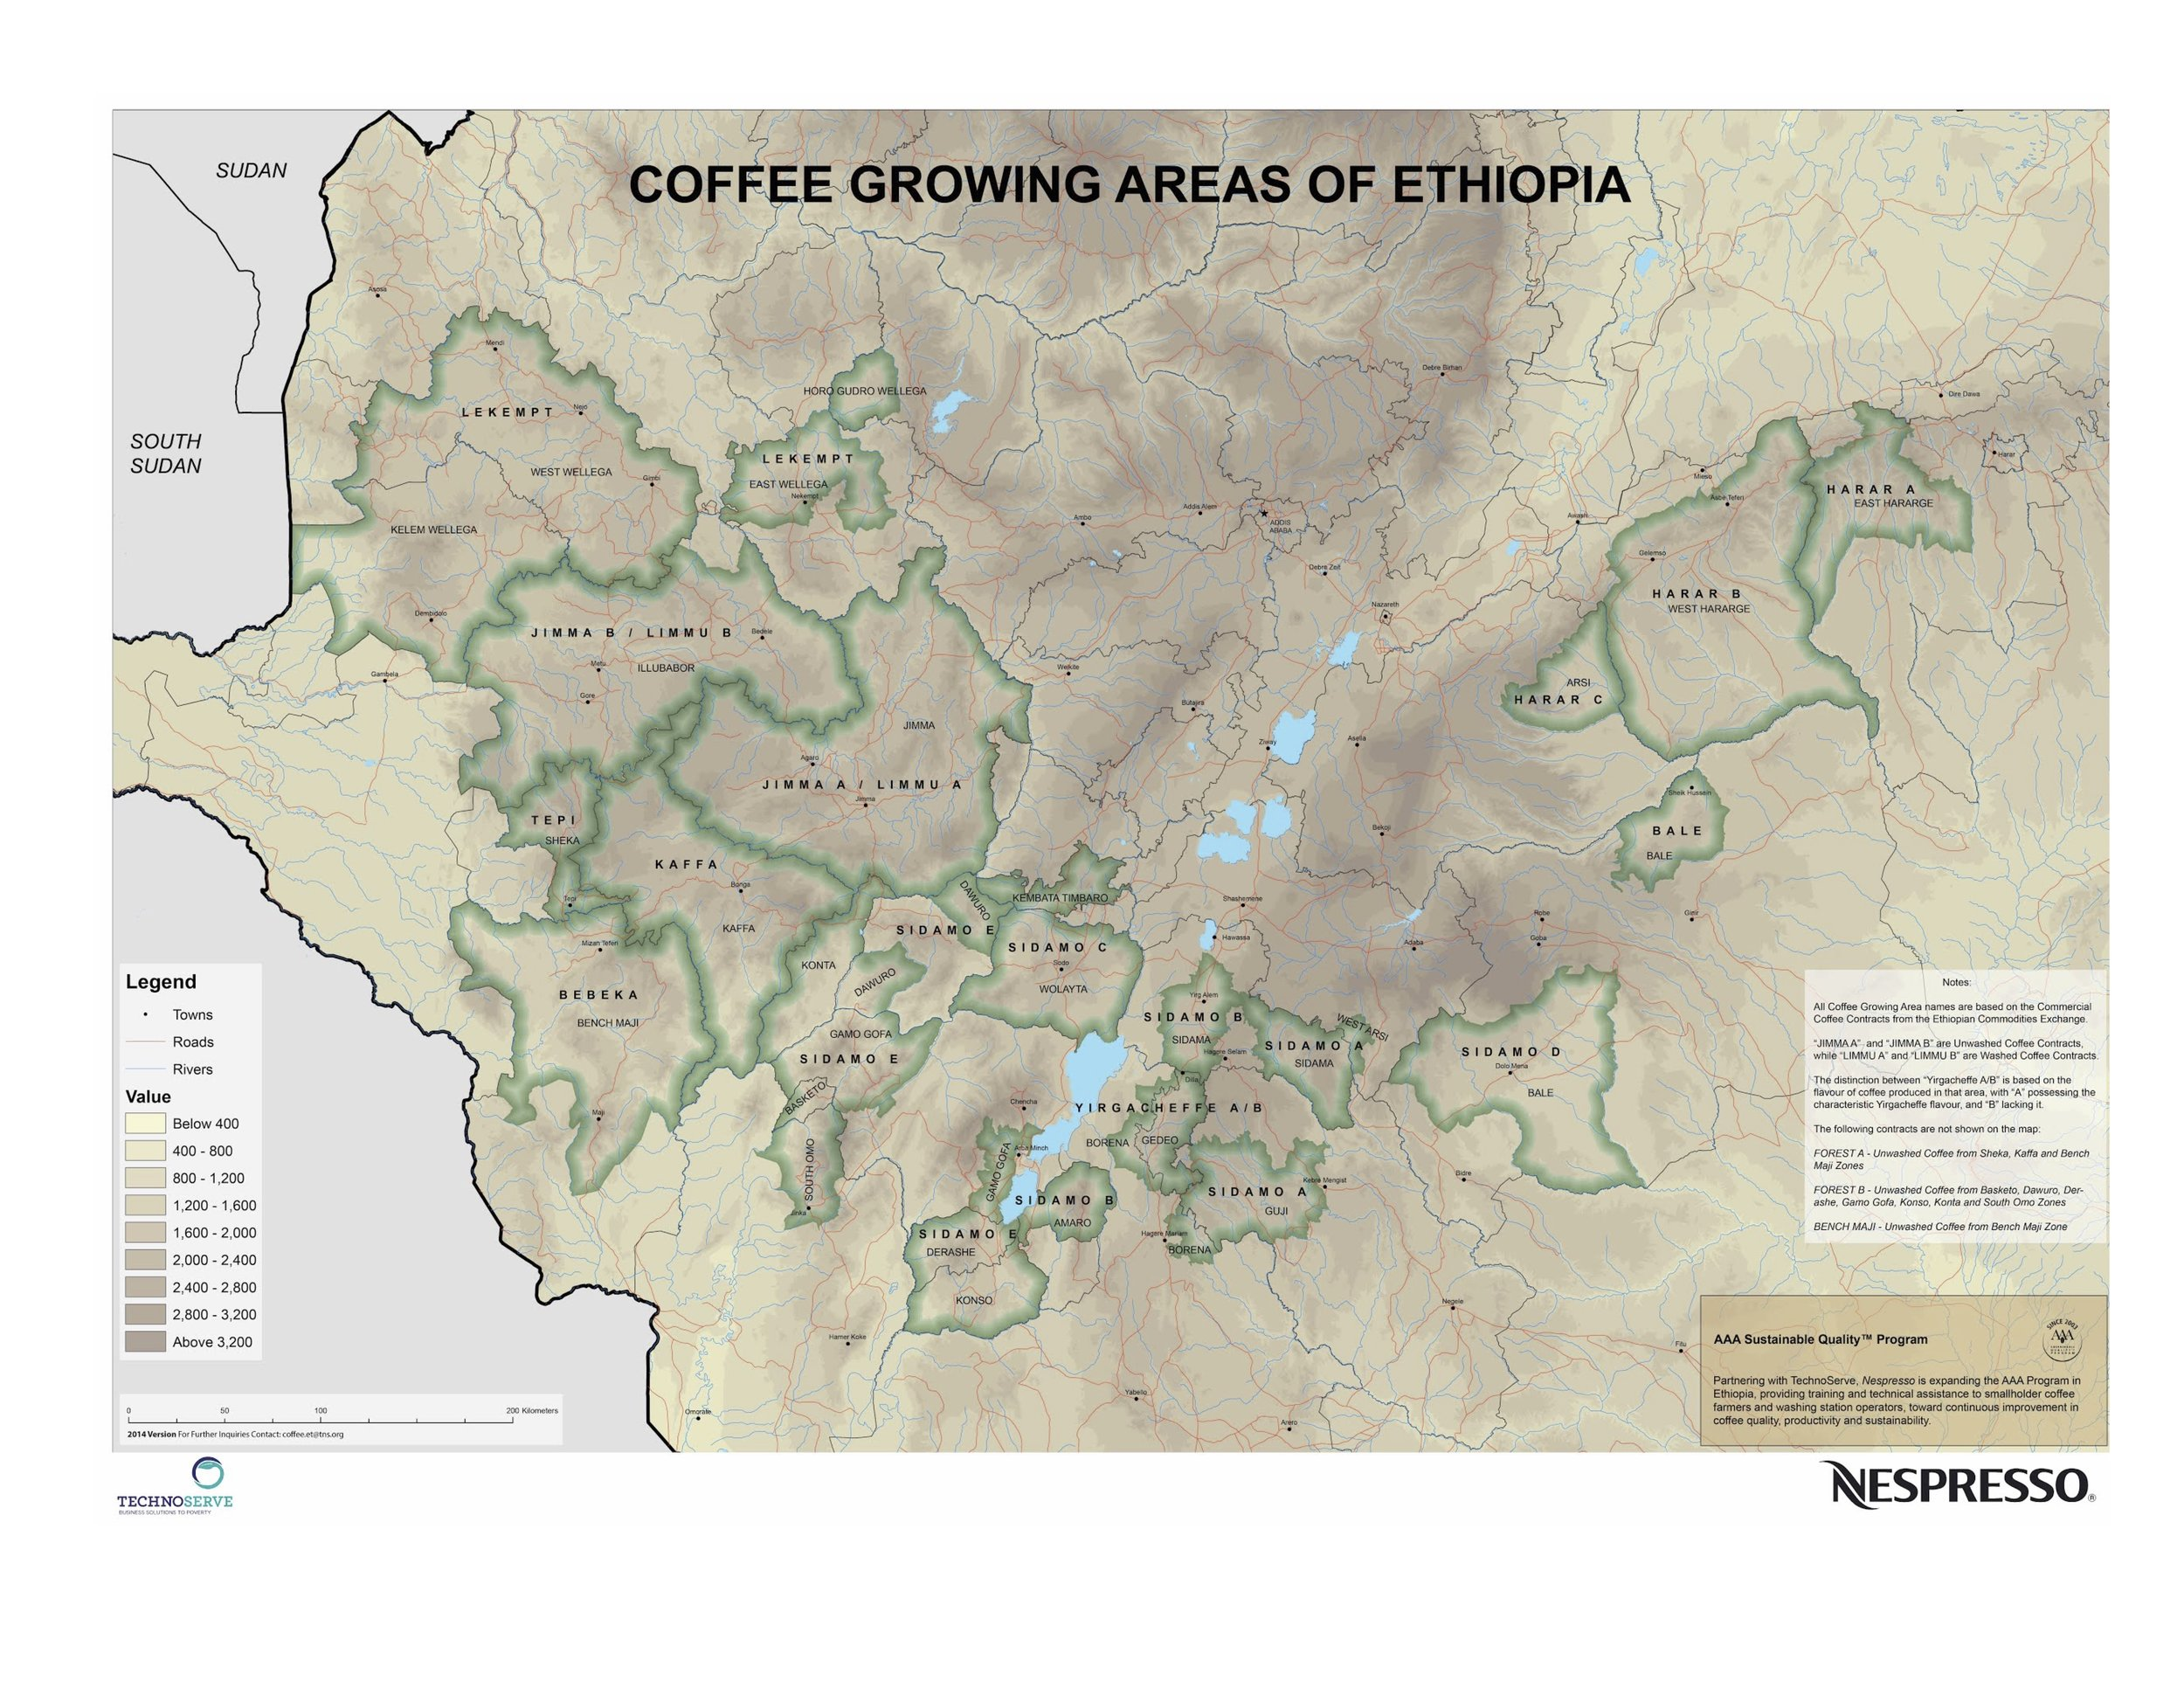 ethiopia-coffee-areas.jpg